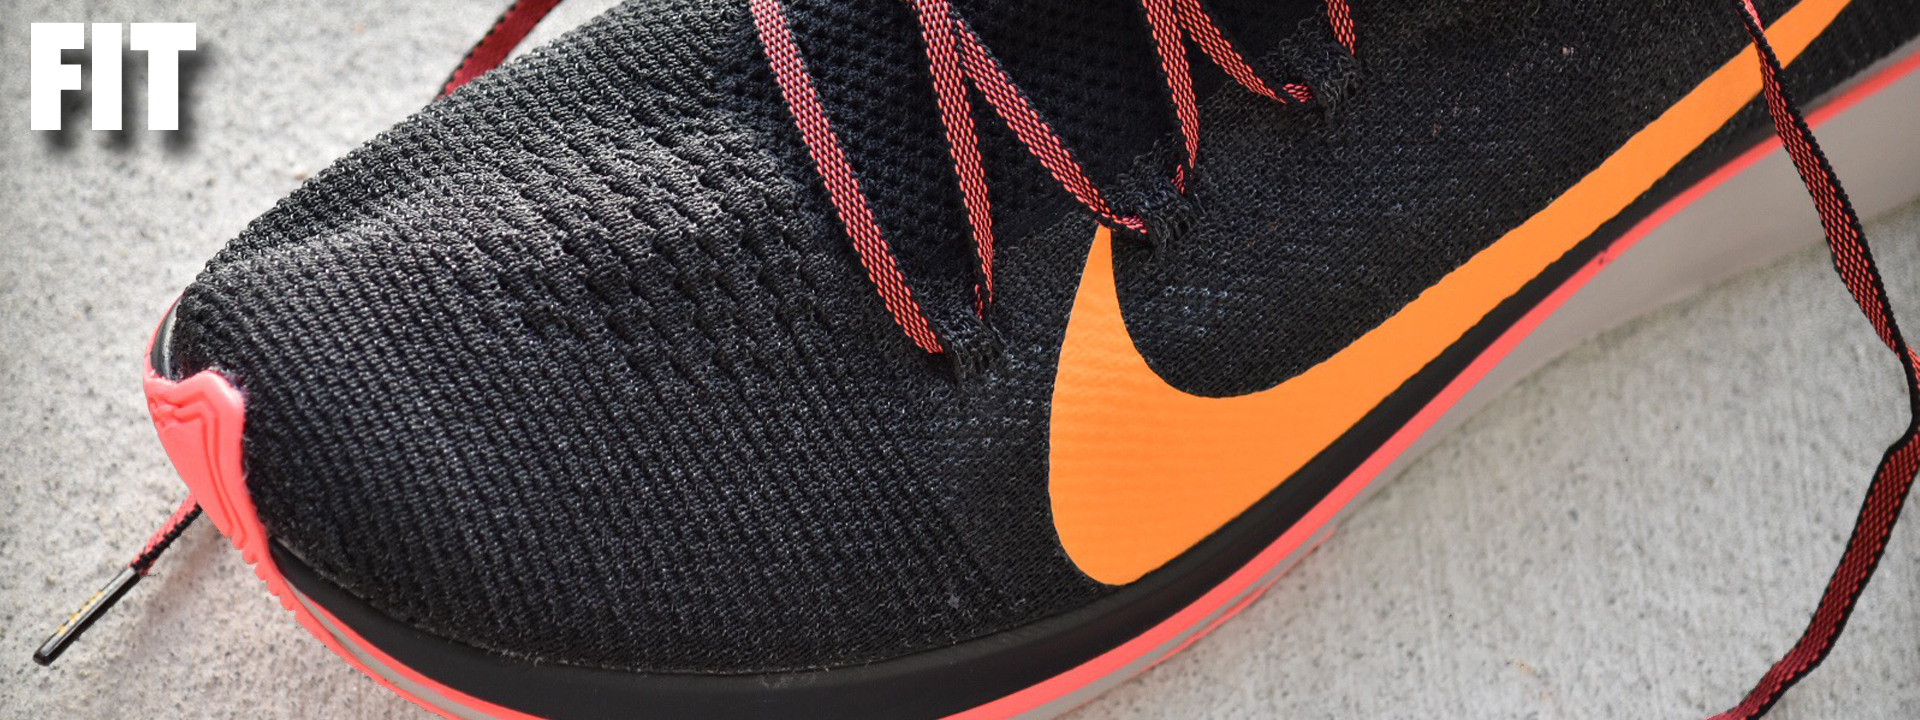 6bf116de7469f nike zoom fly flyknit performance review fit - WearTesters